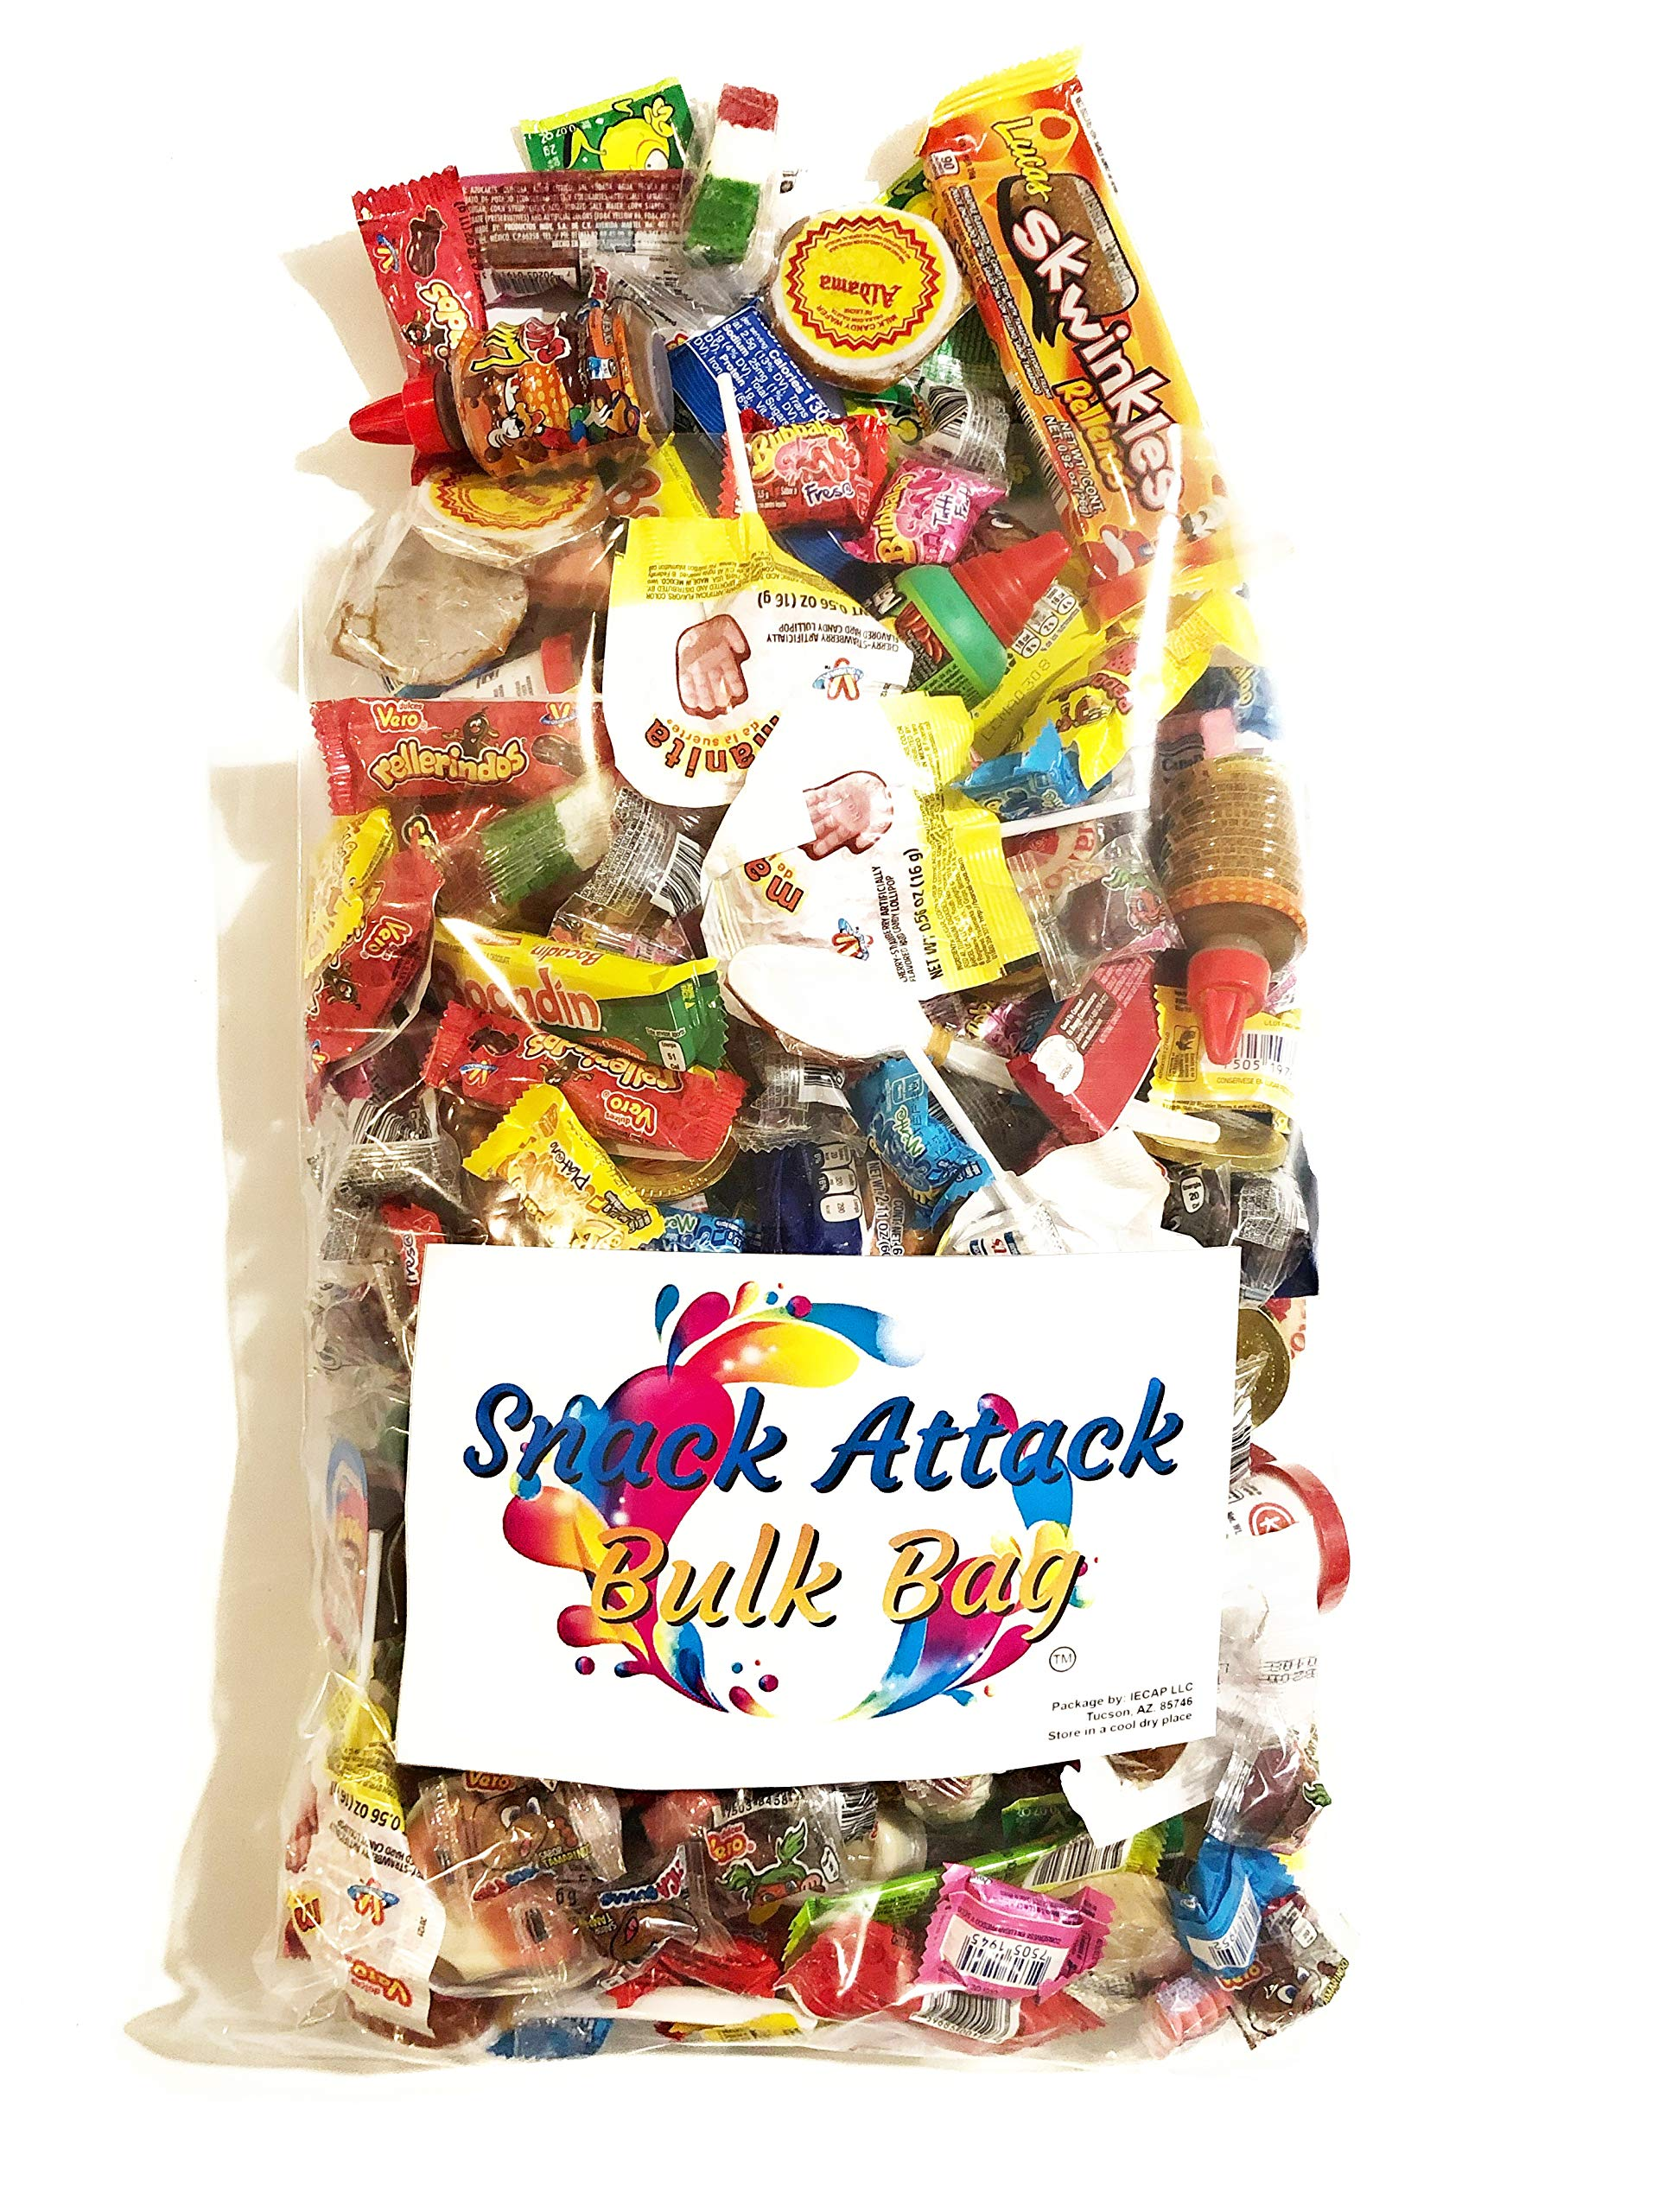 Mexican Candy Assortment Pinata Party Mix, 5 LB Bulk Bag: Mazapan, Lucas Candy, Pelon Pelo Rico, Pulparindo's, Rockaleta, Rebanaditas, Vero Lollipops & Rellerindos, Oblea, Bubulubu and Much More!